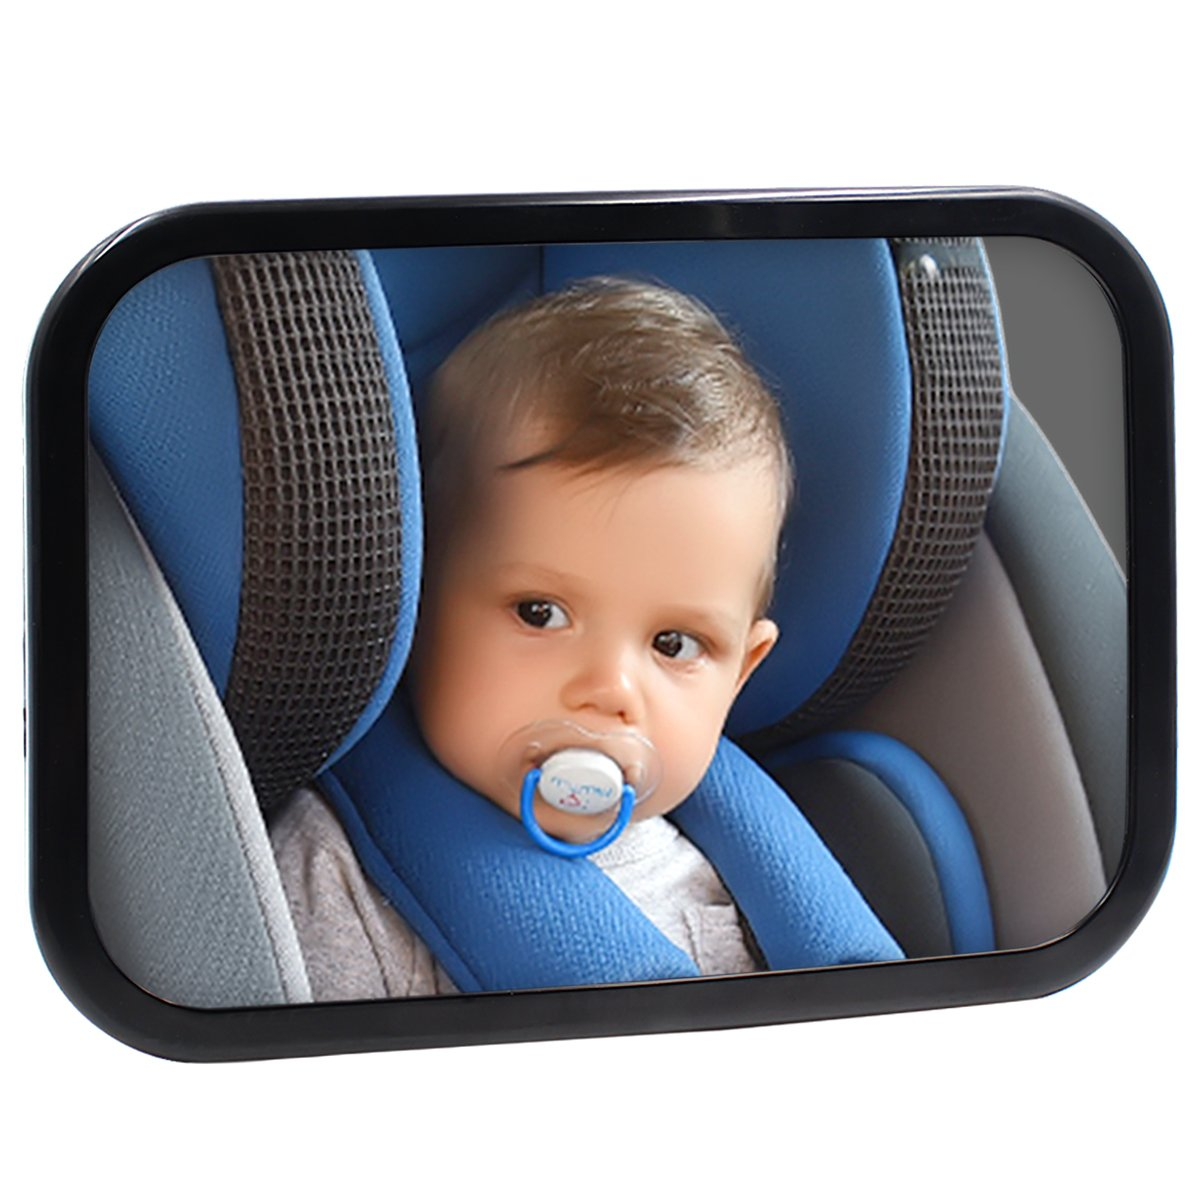 Safe Baby Car Mirror for Rear View Facing Back Seat for Infant Child,Fully Assembled and Adjustable,Backseat Shatterproof Mirror with Perfect Reflection By Hippih